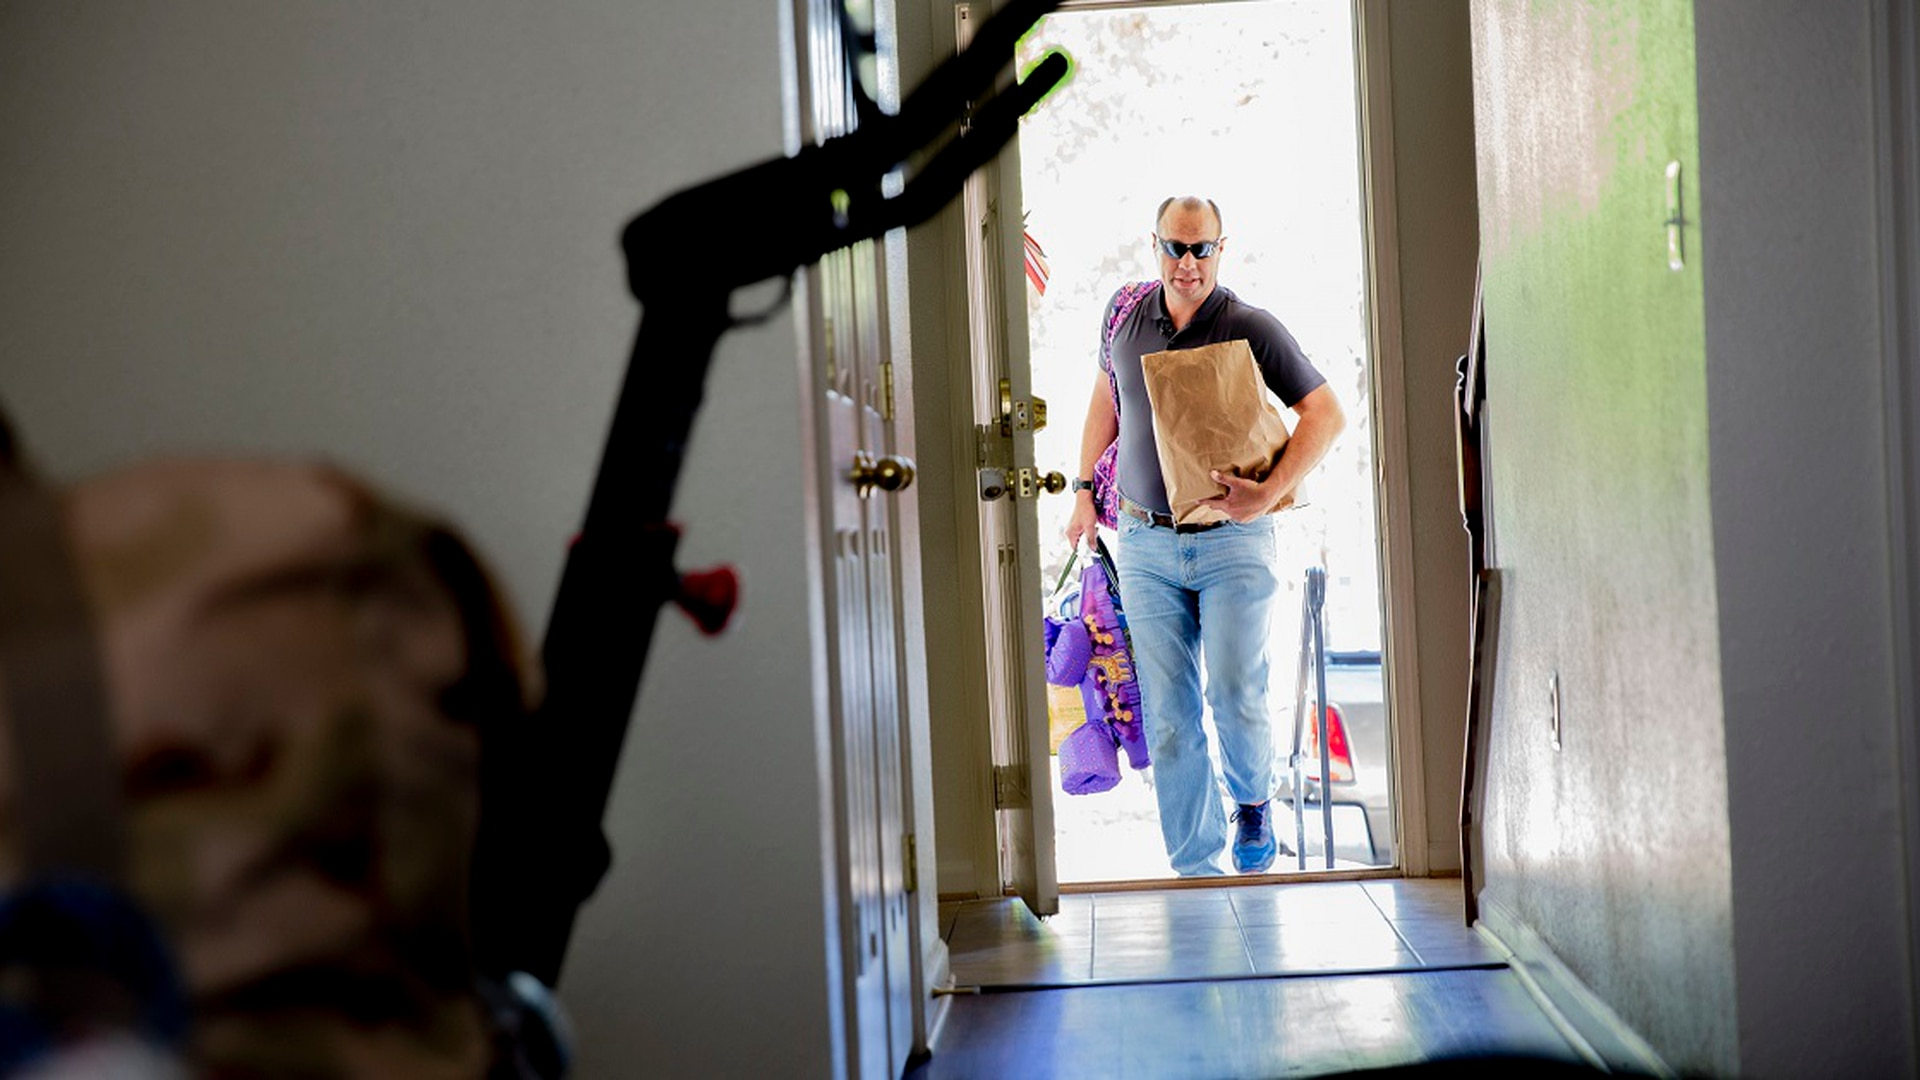 Air Force Lt. Col. Derek Bright moves his family of seven back into their home at Fort Belvoir, Va., Oct. 11. The family was displaced for 87 days while their home was undergoing mold remediation. (Ben Murray/Staff)